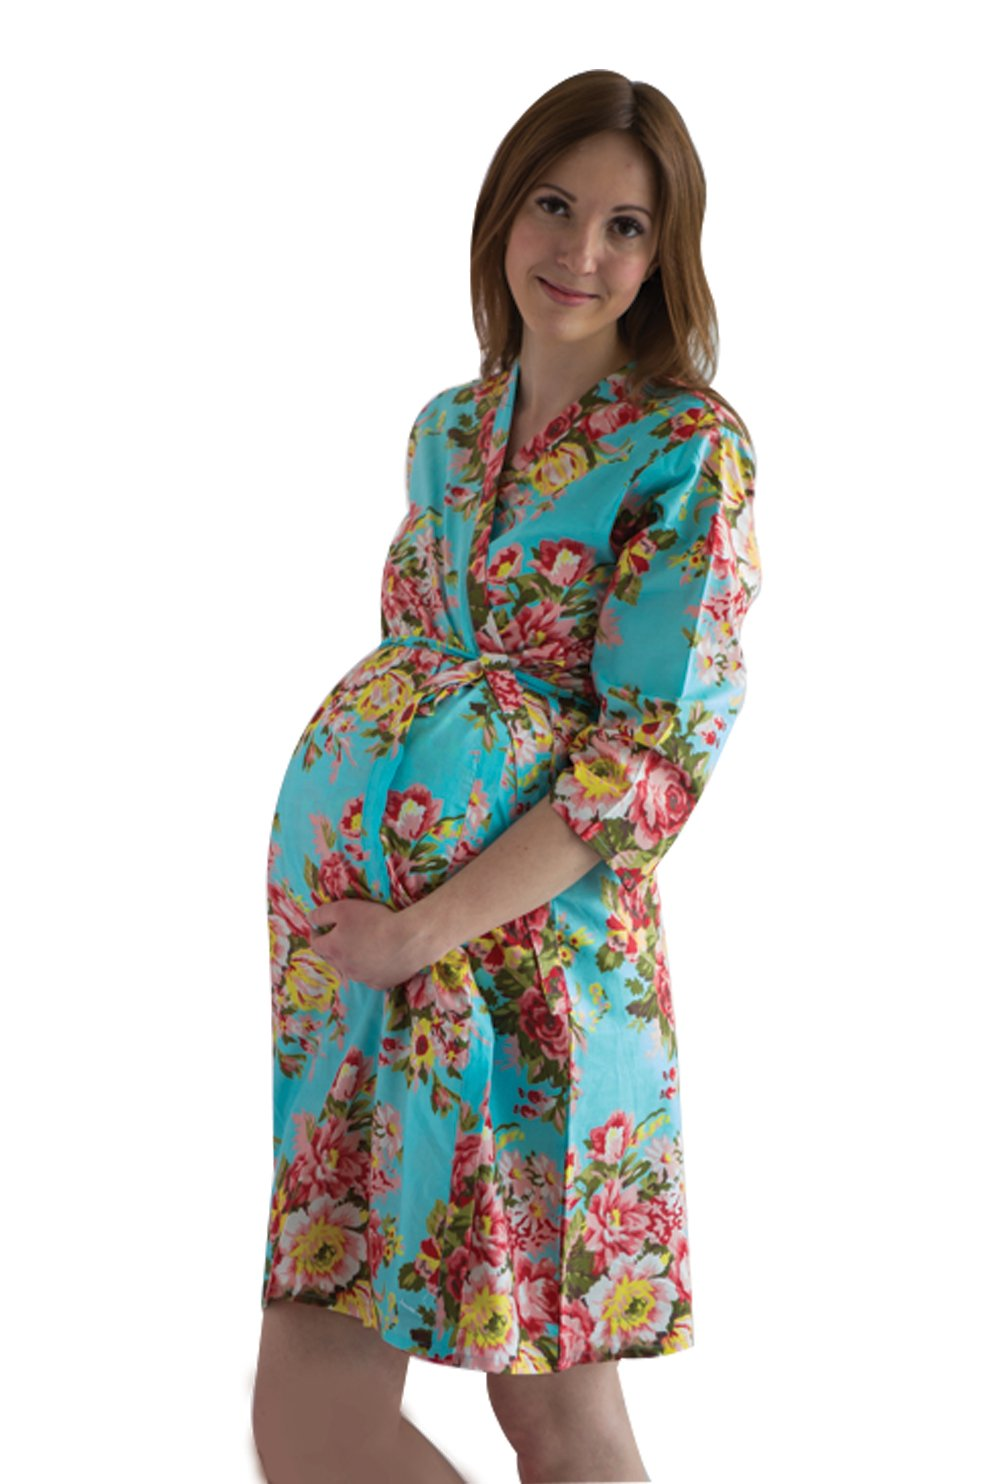 My Growing Belly Turquoise Blue Maternity Robe - Perfect as Hospital Gown, Labor Birthing Gown, Nursing Robe (X-Large,Turquoise Blue Rosy Red Posy Pattern)